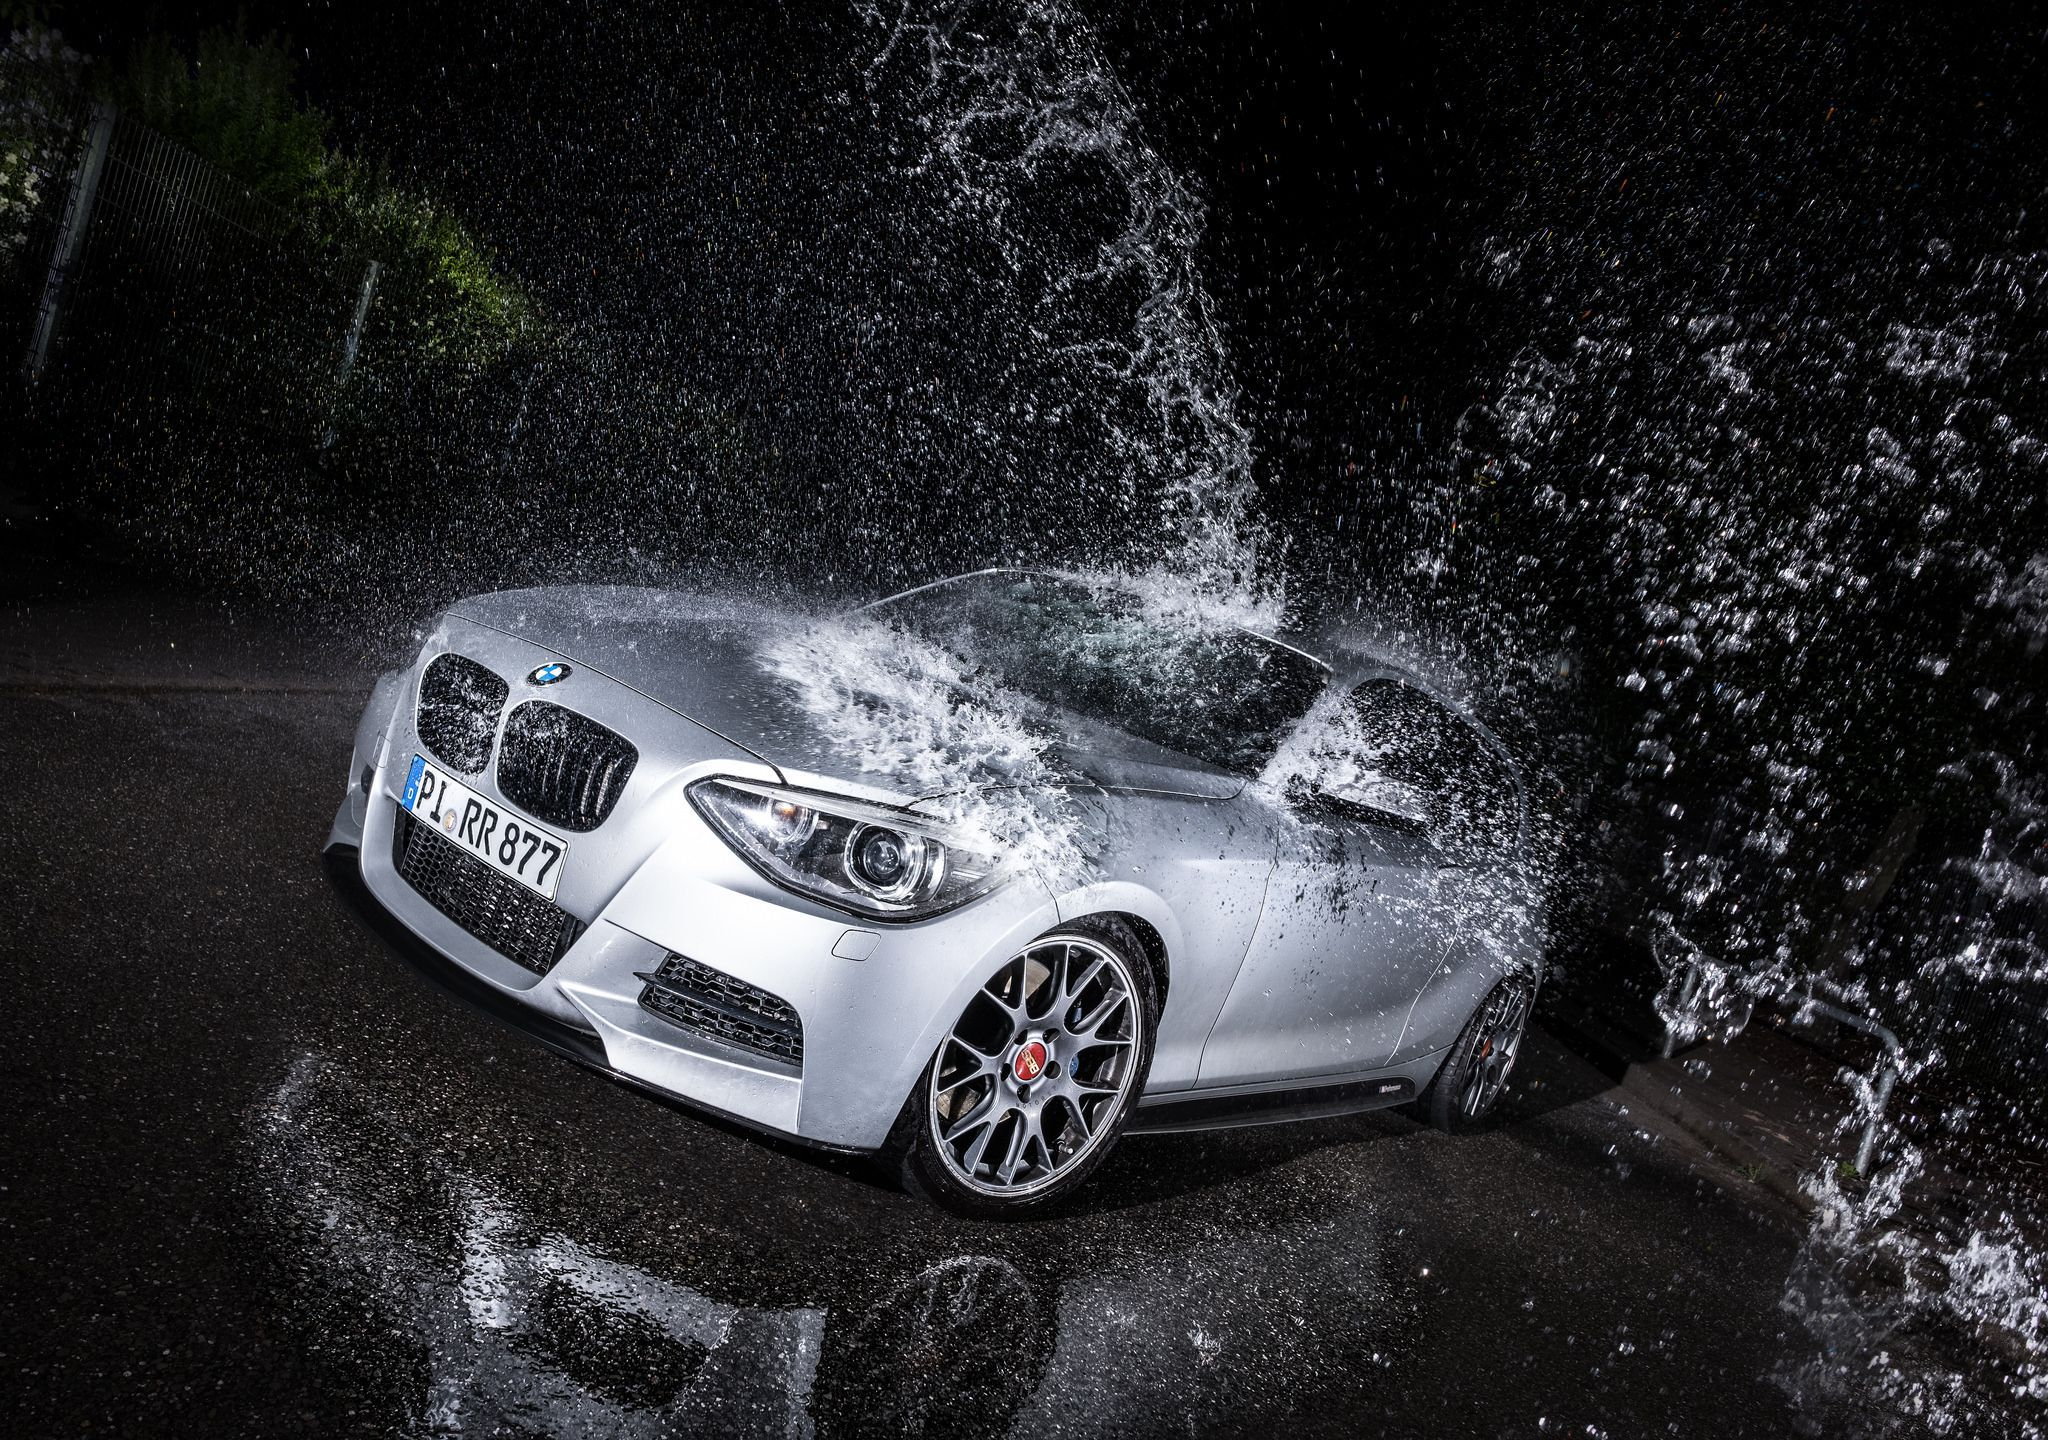 Silver BMW M135i under the drops of water